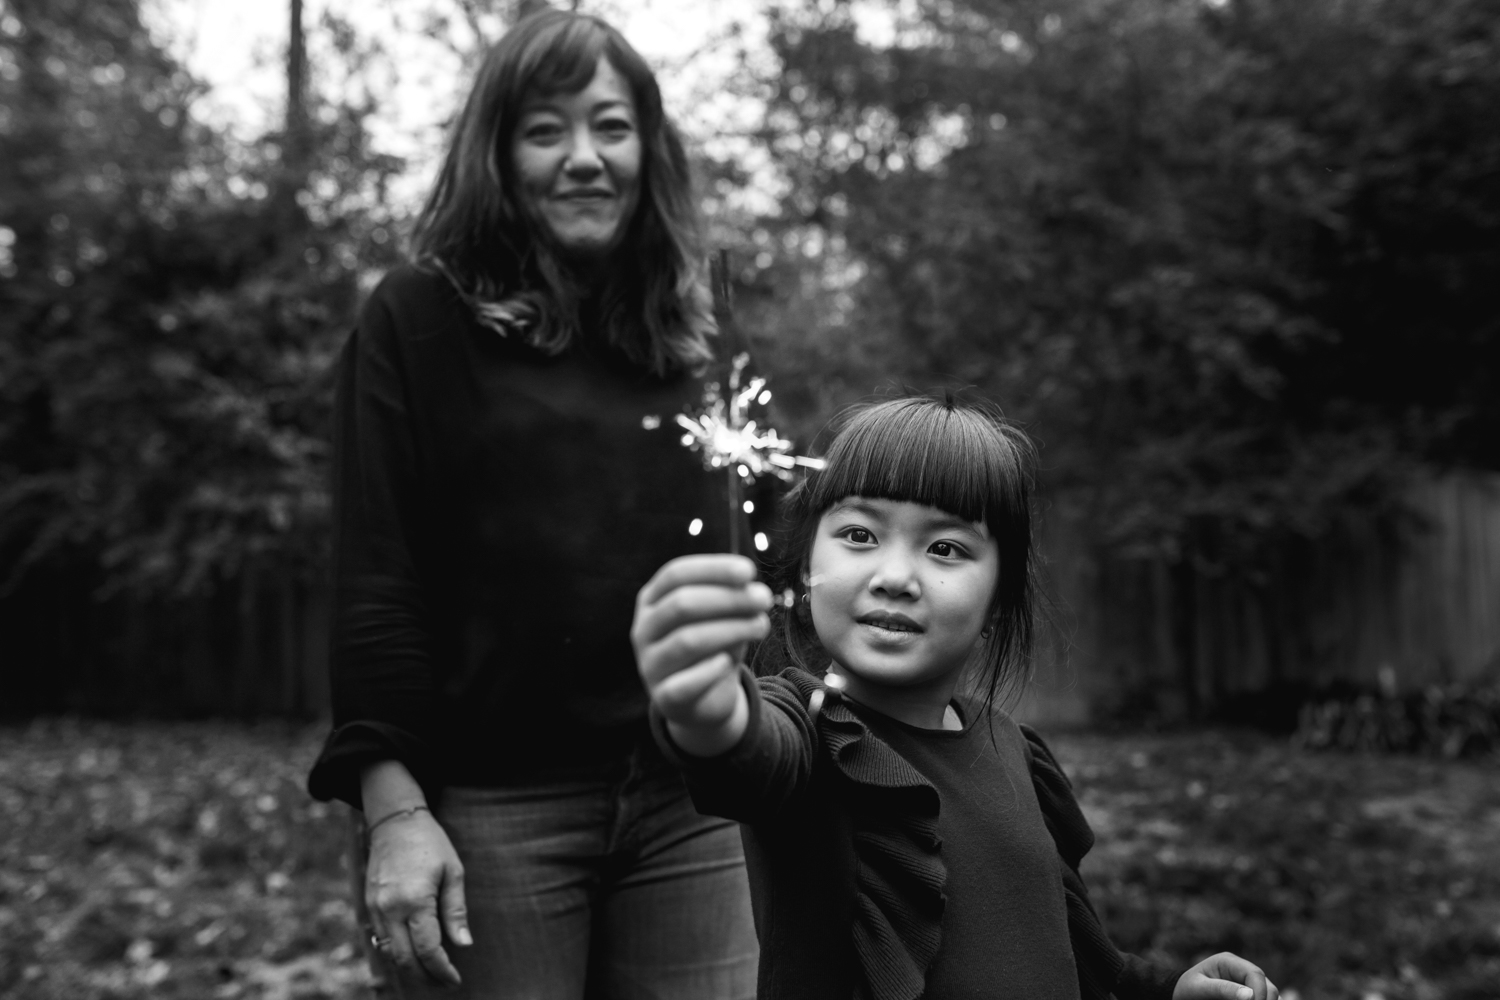 girl looks at a sparkler she is holding from a family documentary photography session in atlanta